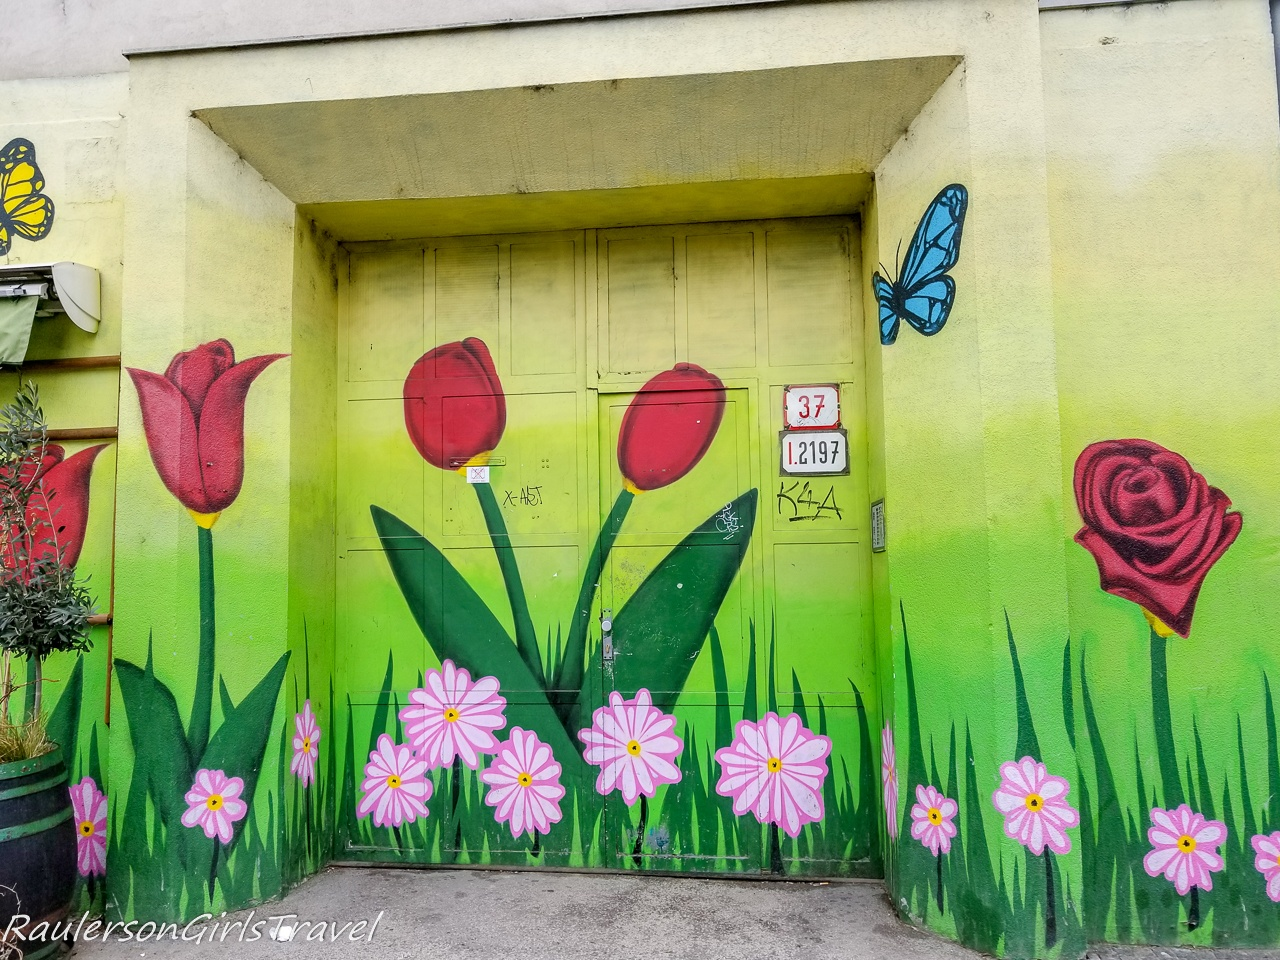 Flowers and butterflies on side of building in Bratislava